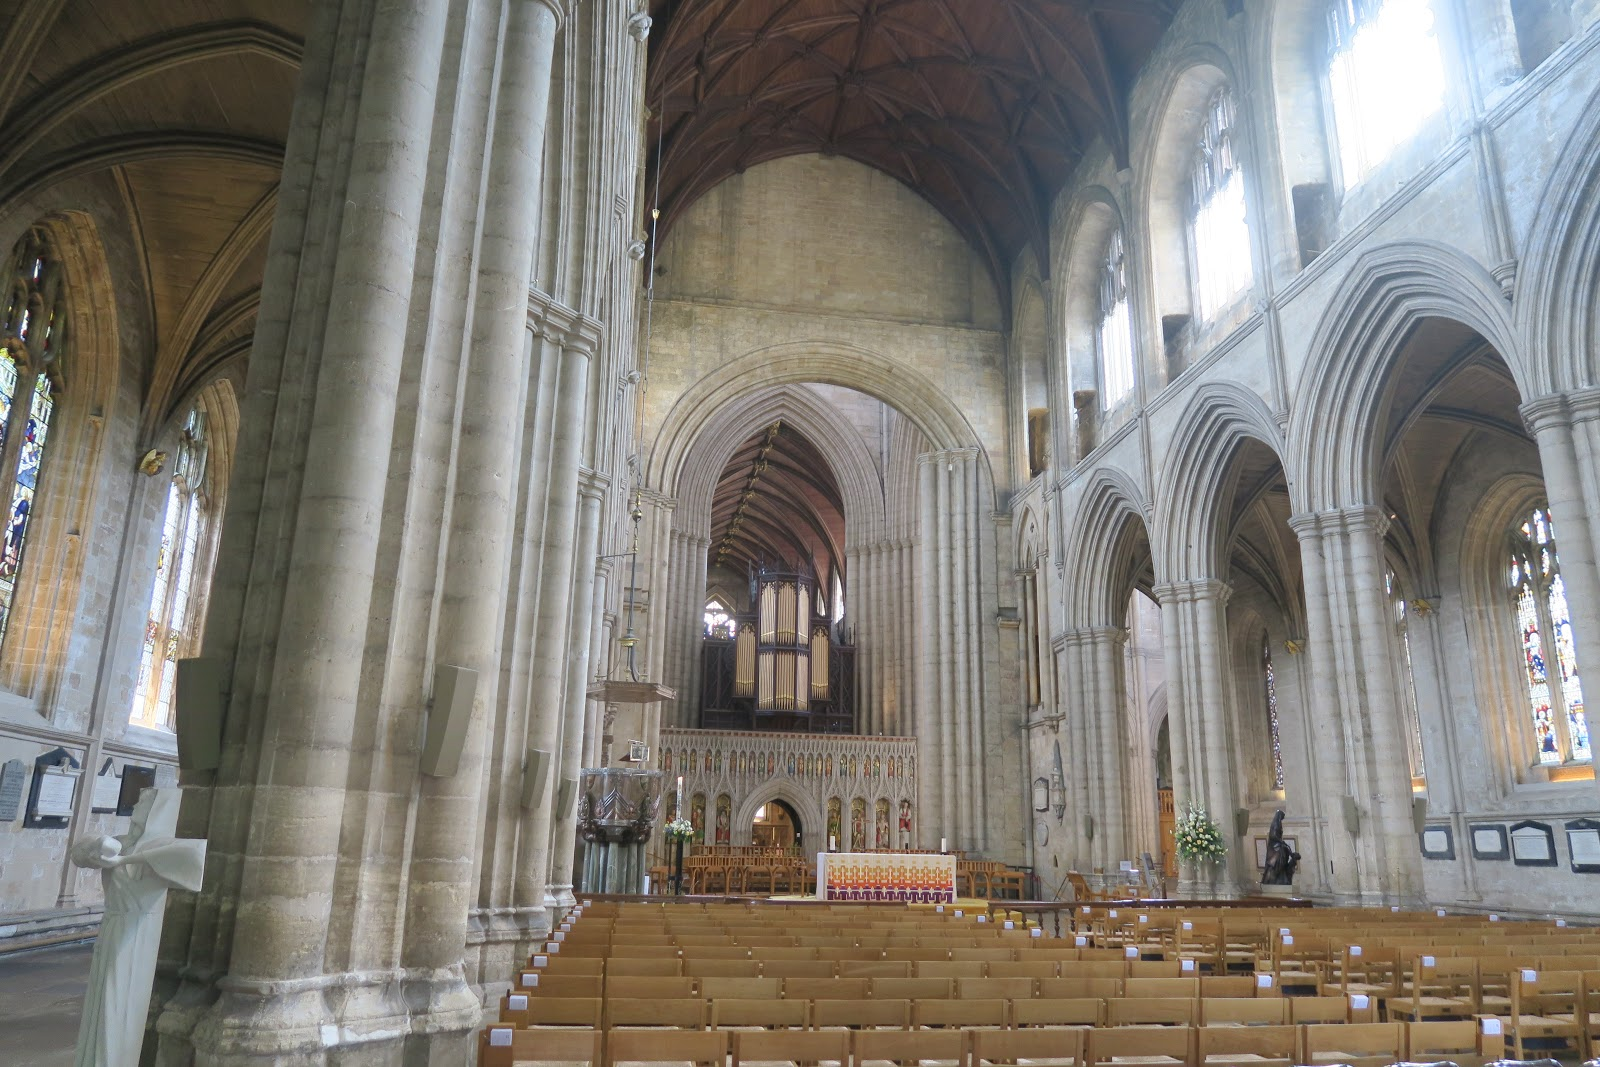 033+Interior+of+ripon+Cathedral.JPG